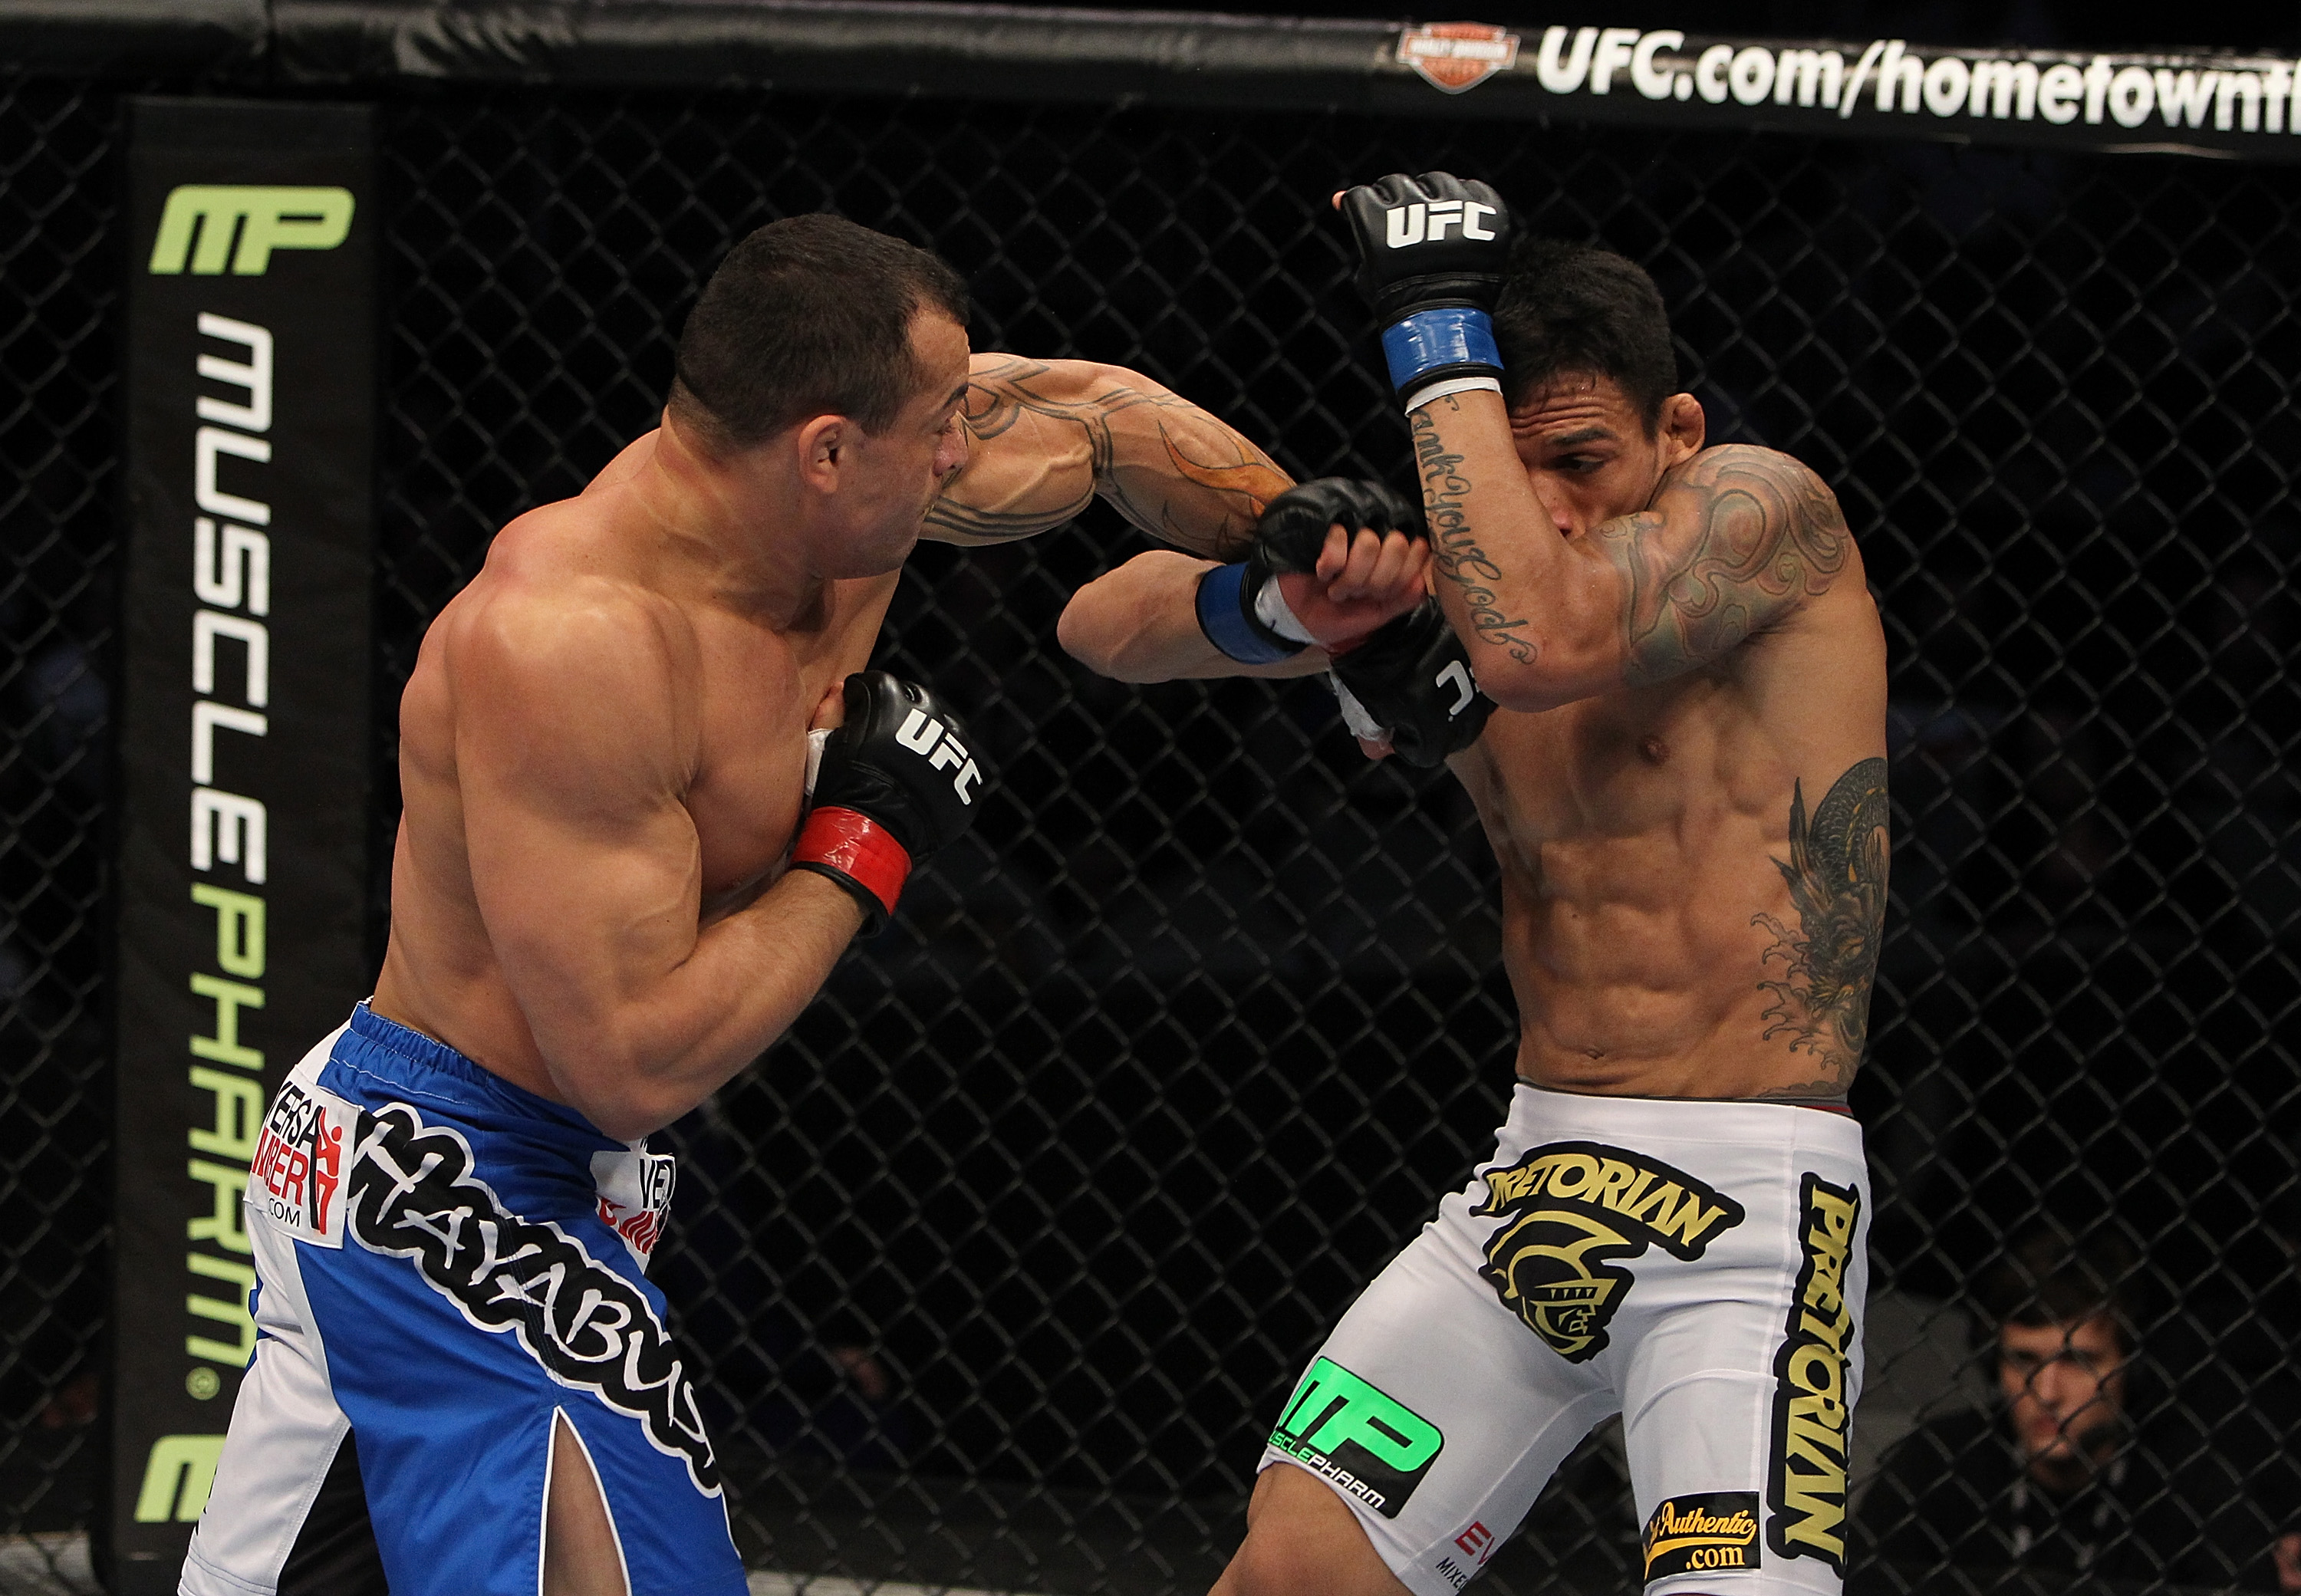 SAN JOSE, CA - NOVEMBER 19: (L-R) Gleison Tibau punches Rafael dos Anjos during an UFC Lightweight bout at the HP Pavillion in San Jose, California on November 19, 2011 in San Jose, California.  (Photo by Josh Hedges/Zuffa LLC/Zuffa LLC via Getty Images)